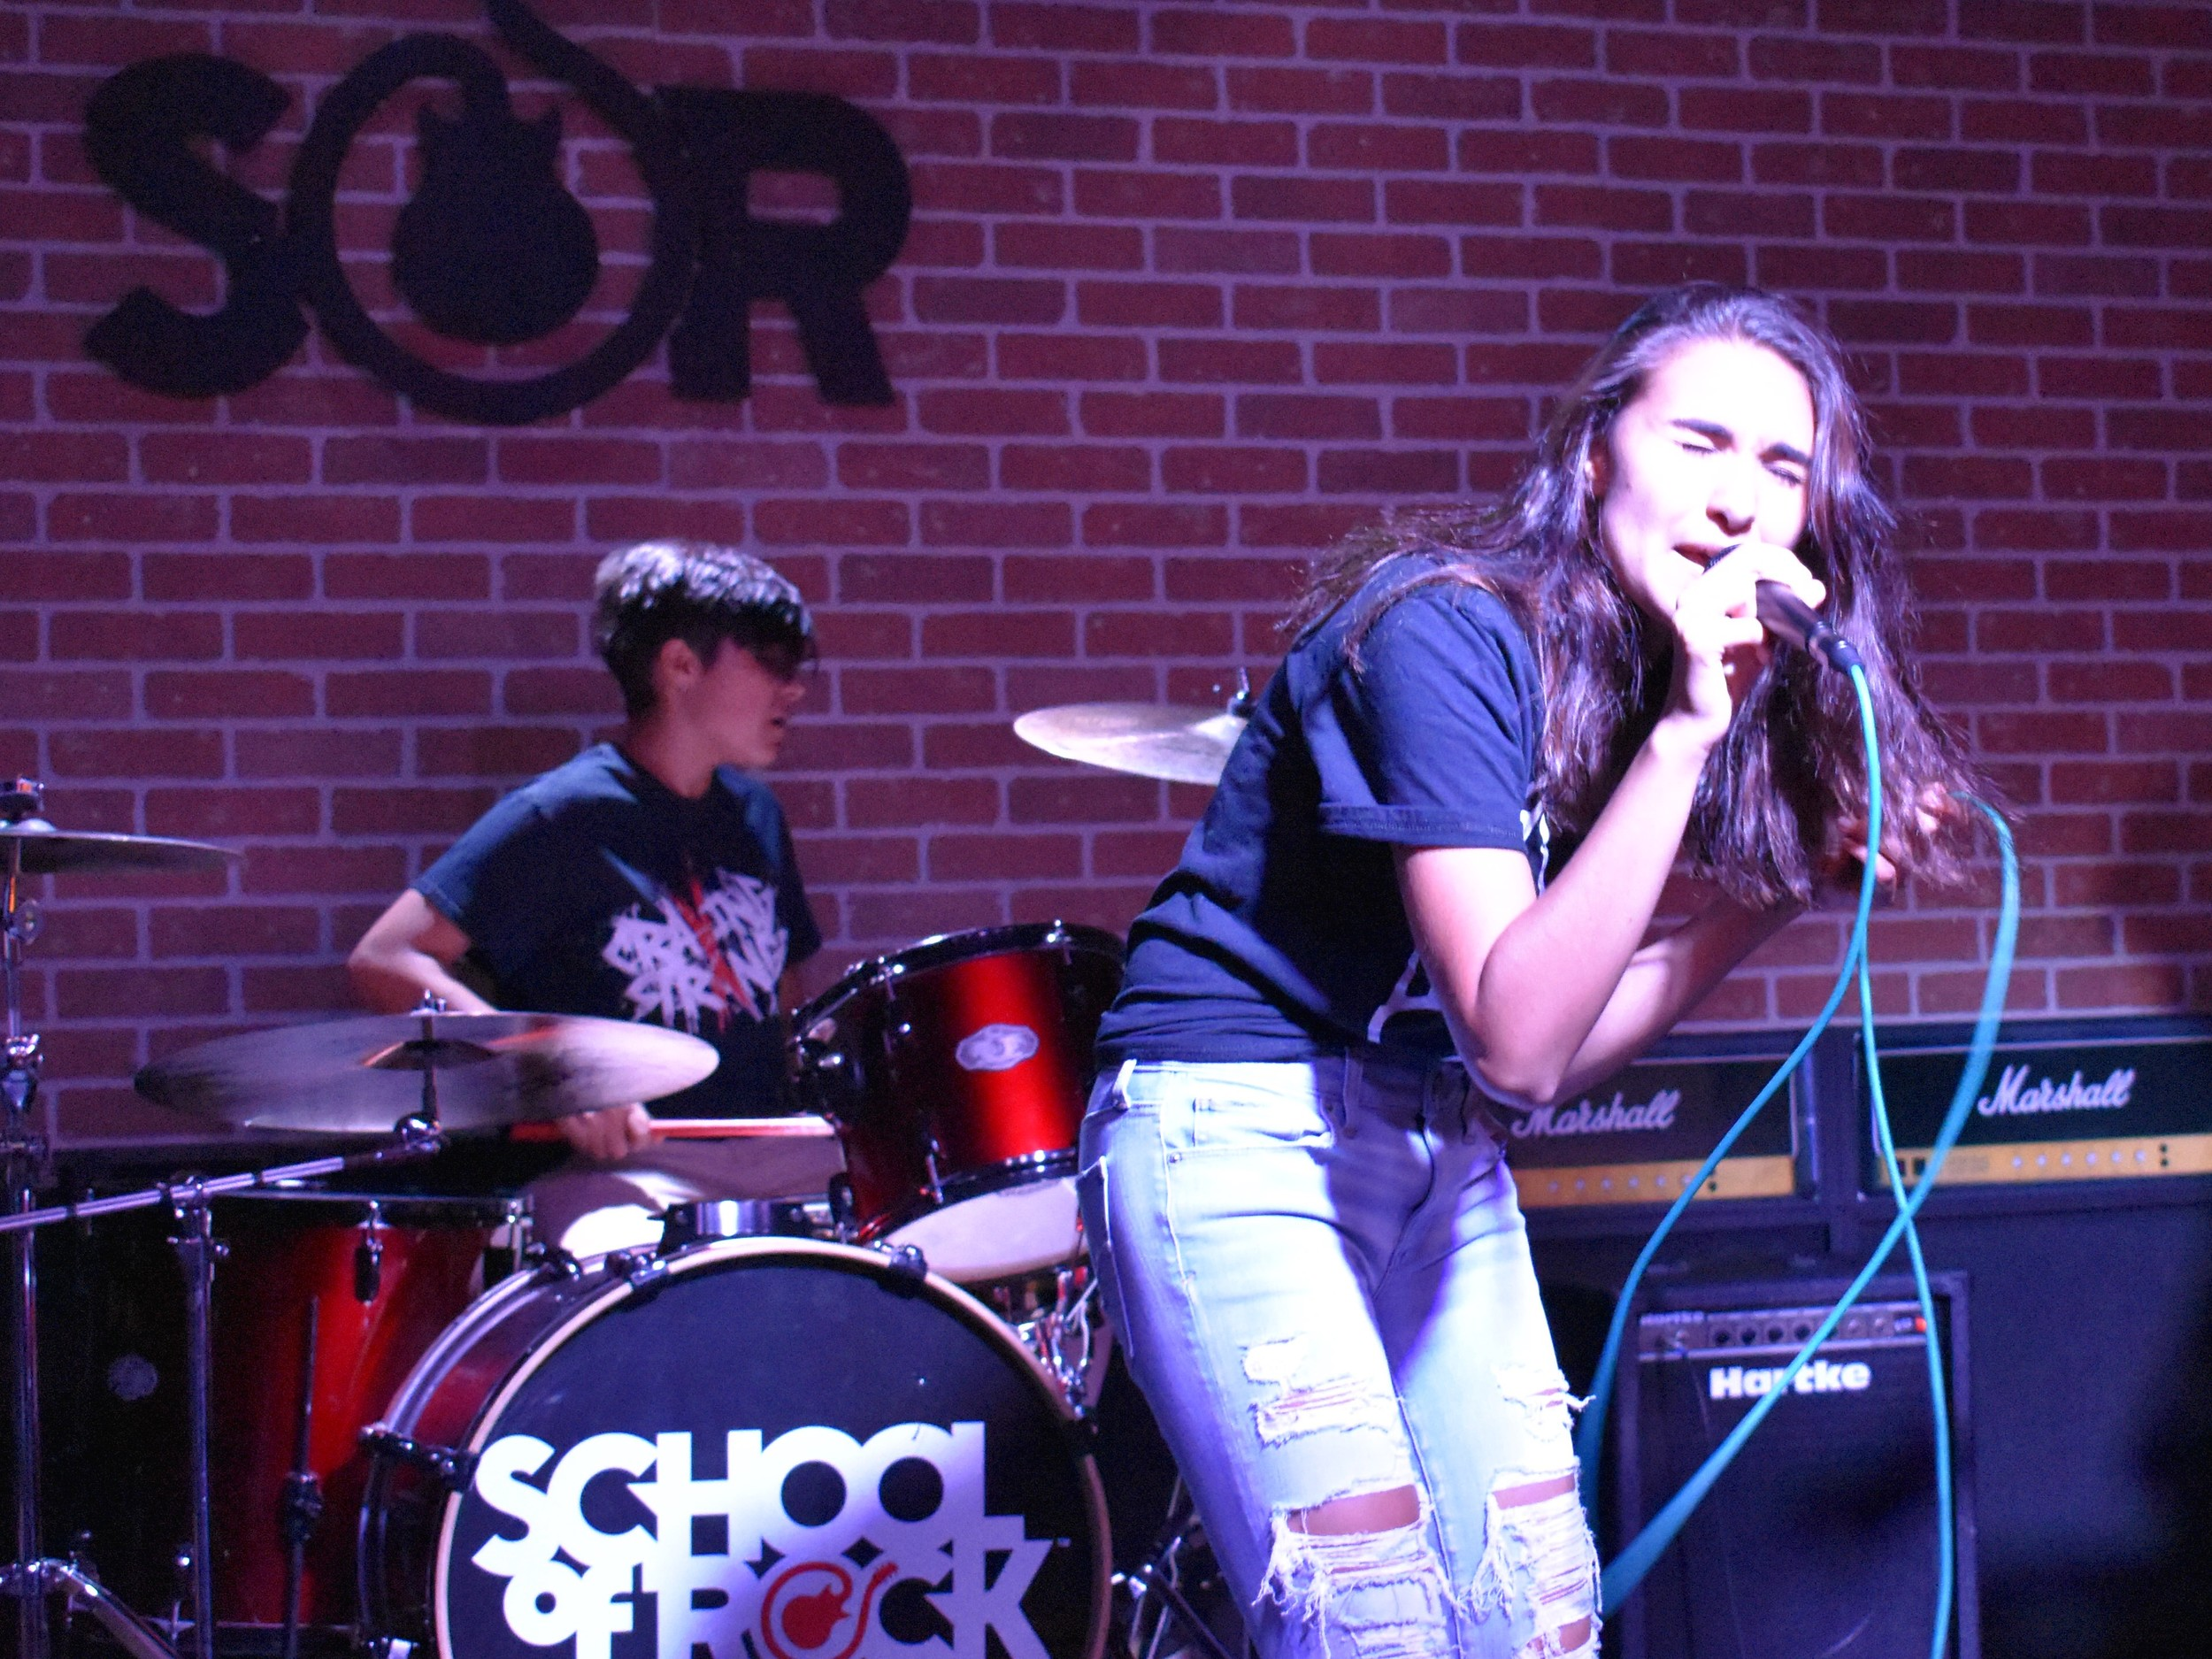 Singer Katie Bacchi, 17, and her sister, Emily, 13, of Rockville Centre, rehearsed with the School of Rock's house band, Trip Wire, last week.